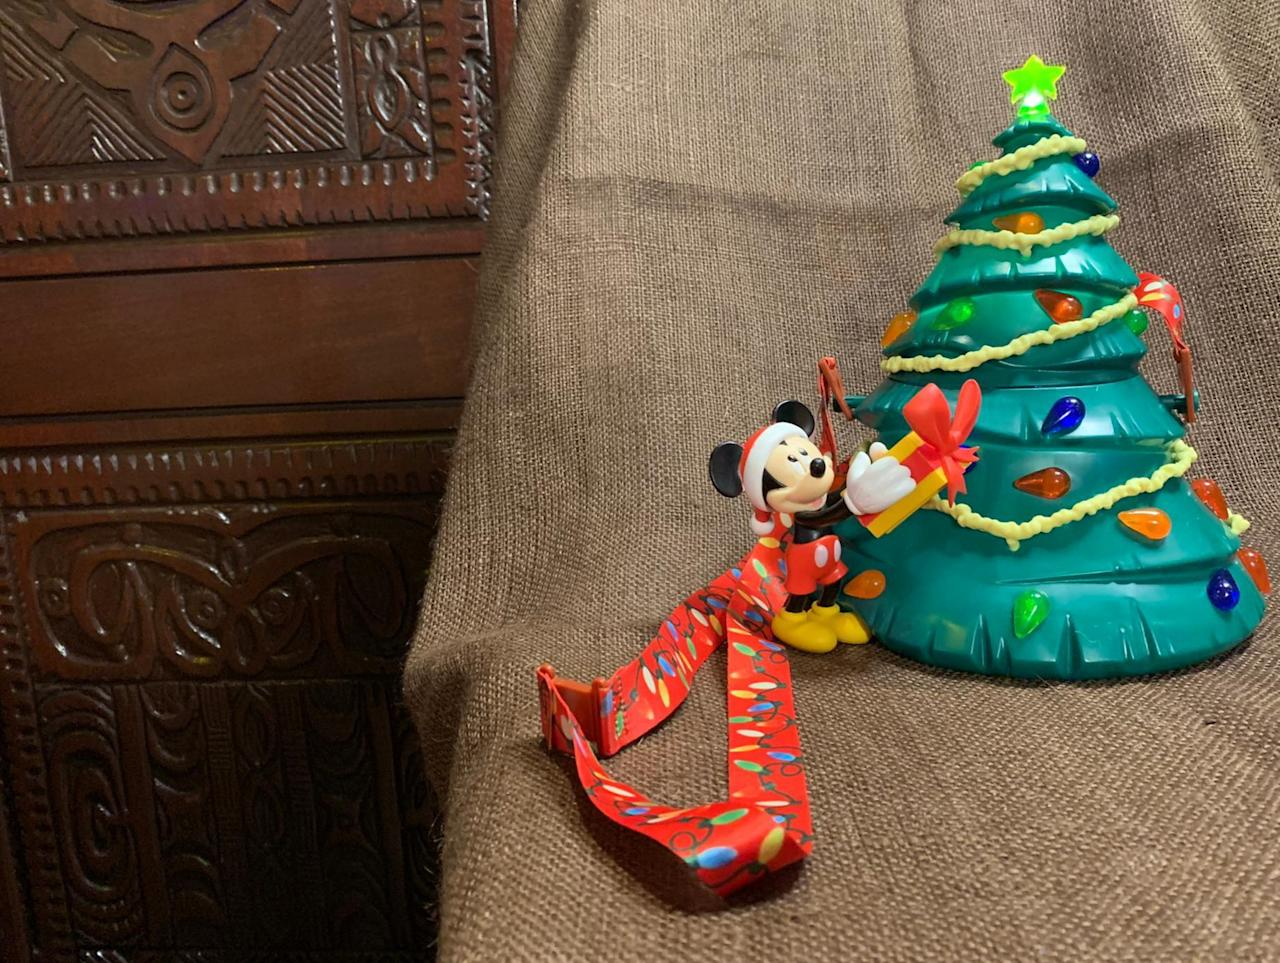 Disney World's new Christmas Tree popcorn bucket is the most festive thing we've ever seen